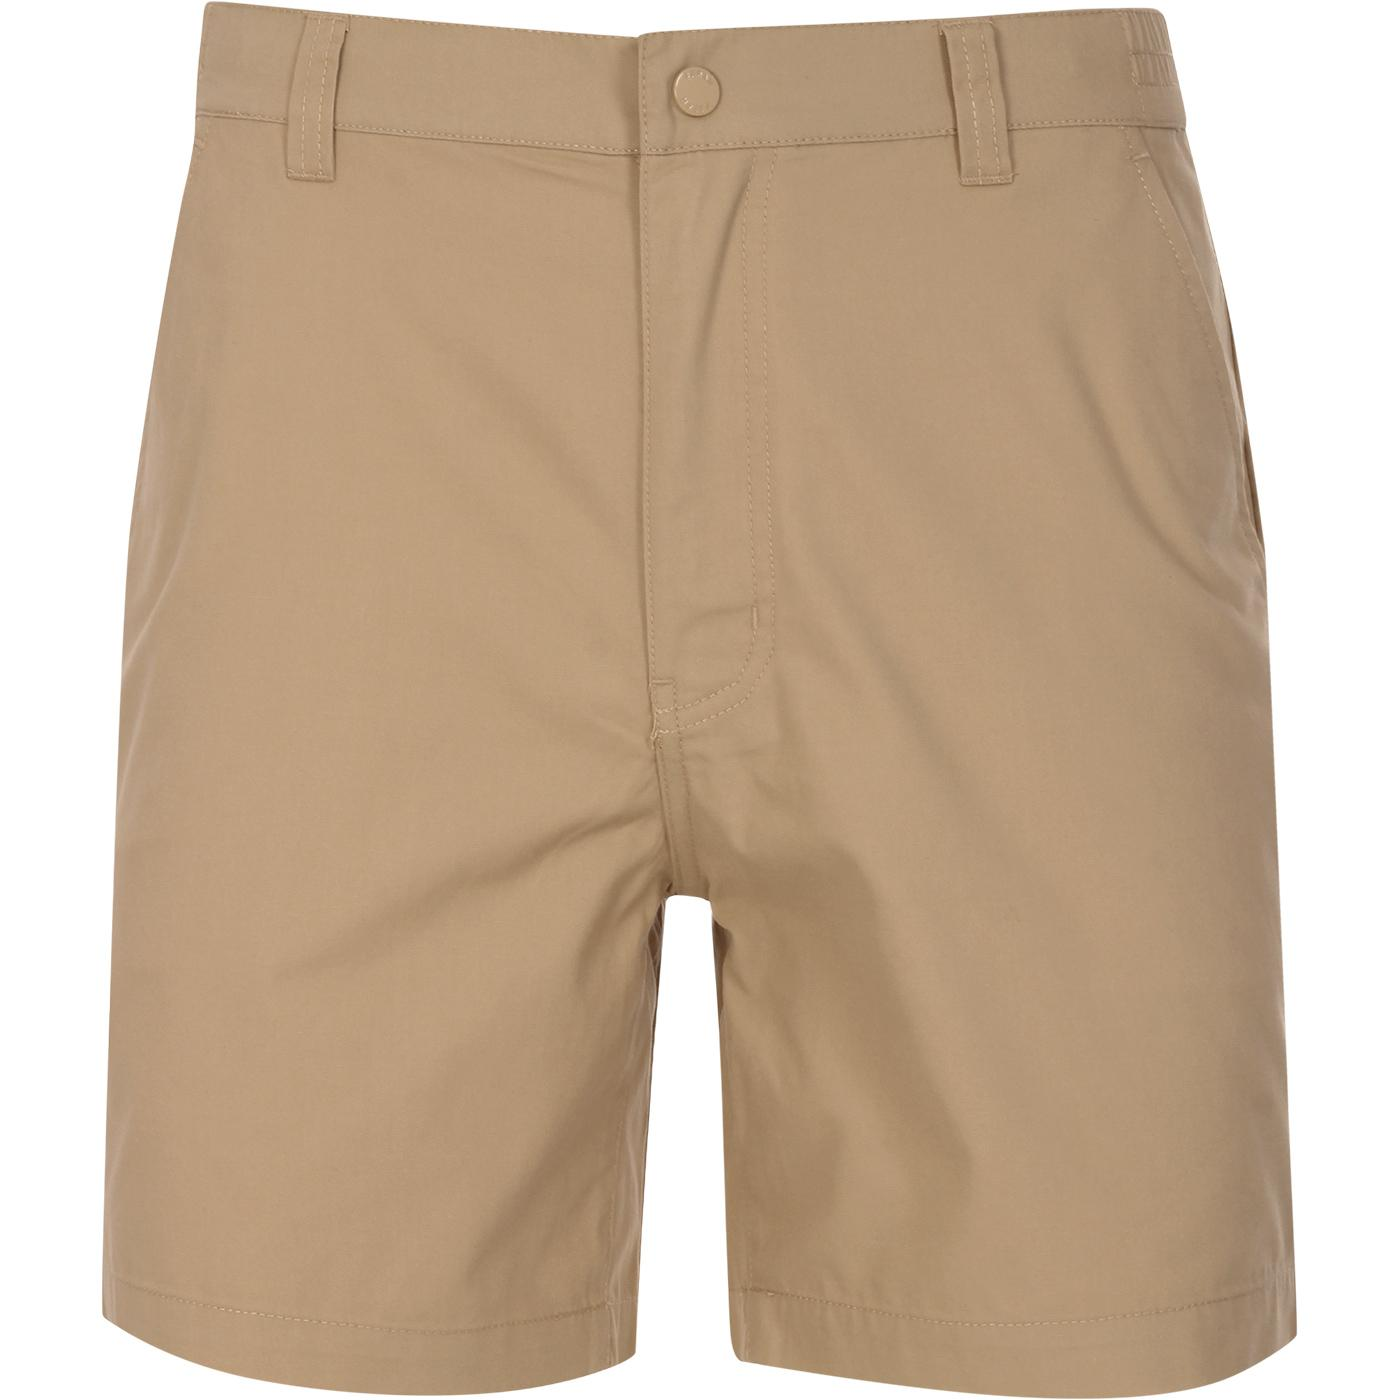 Redwald FARAH Men's Tailored Rugby Shorts (Sand)